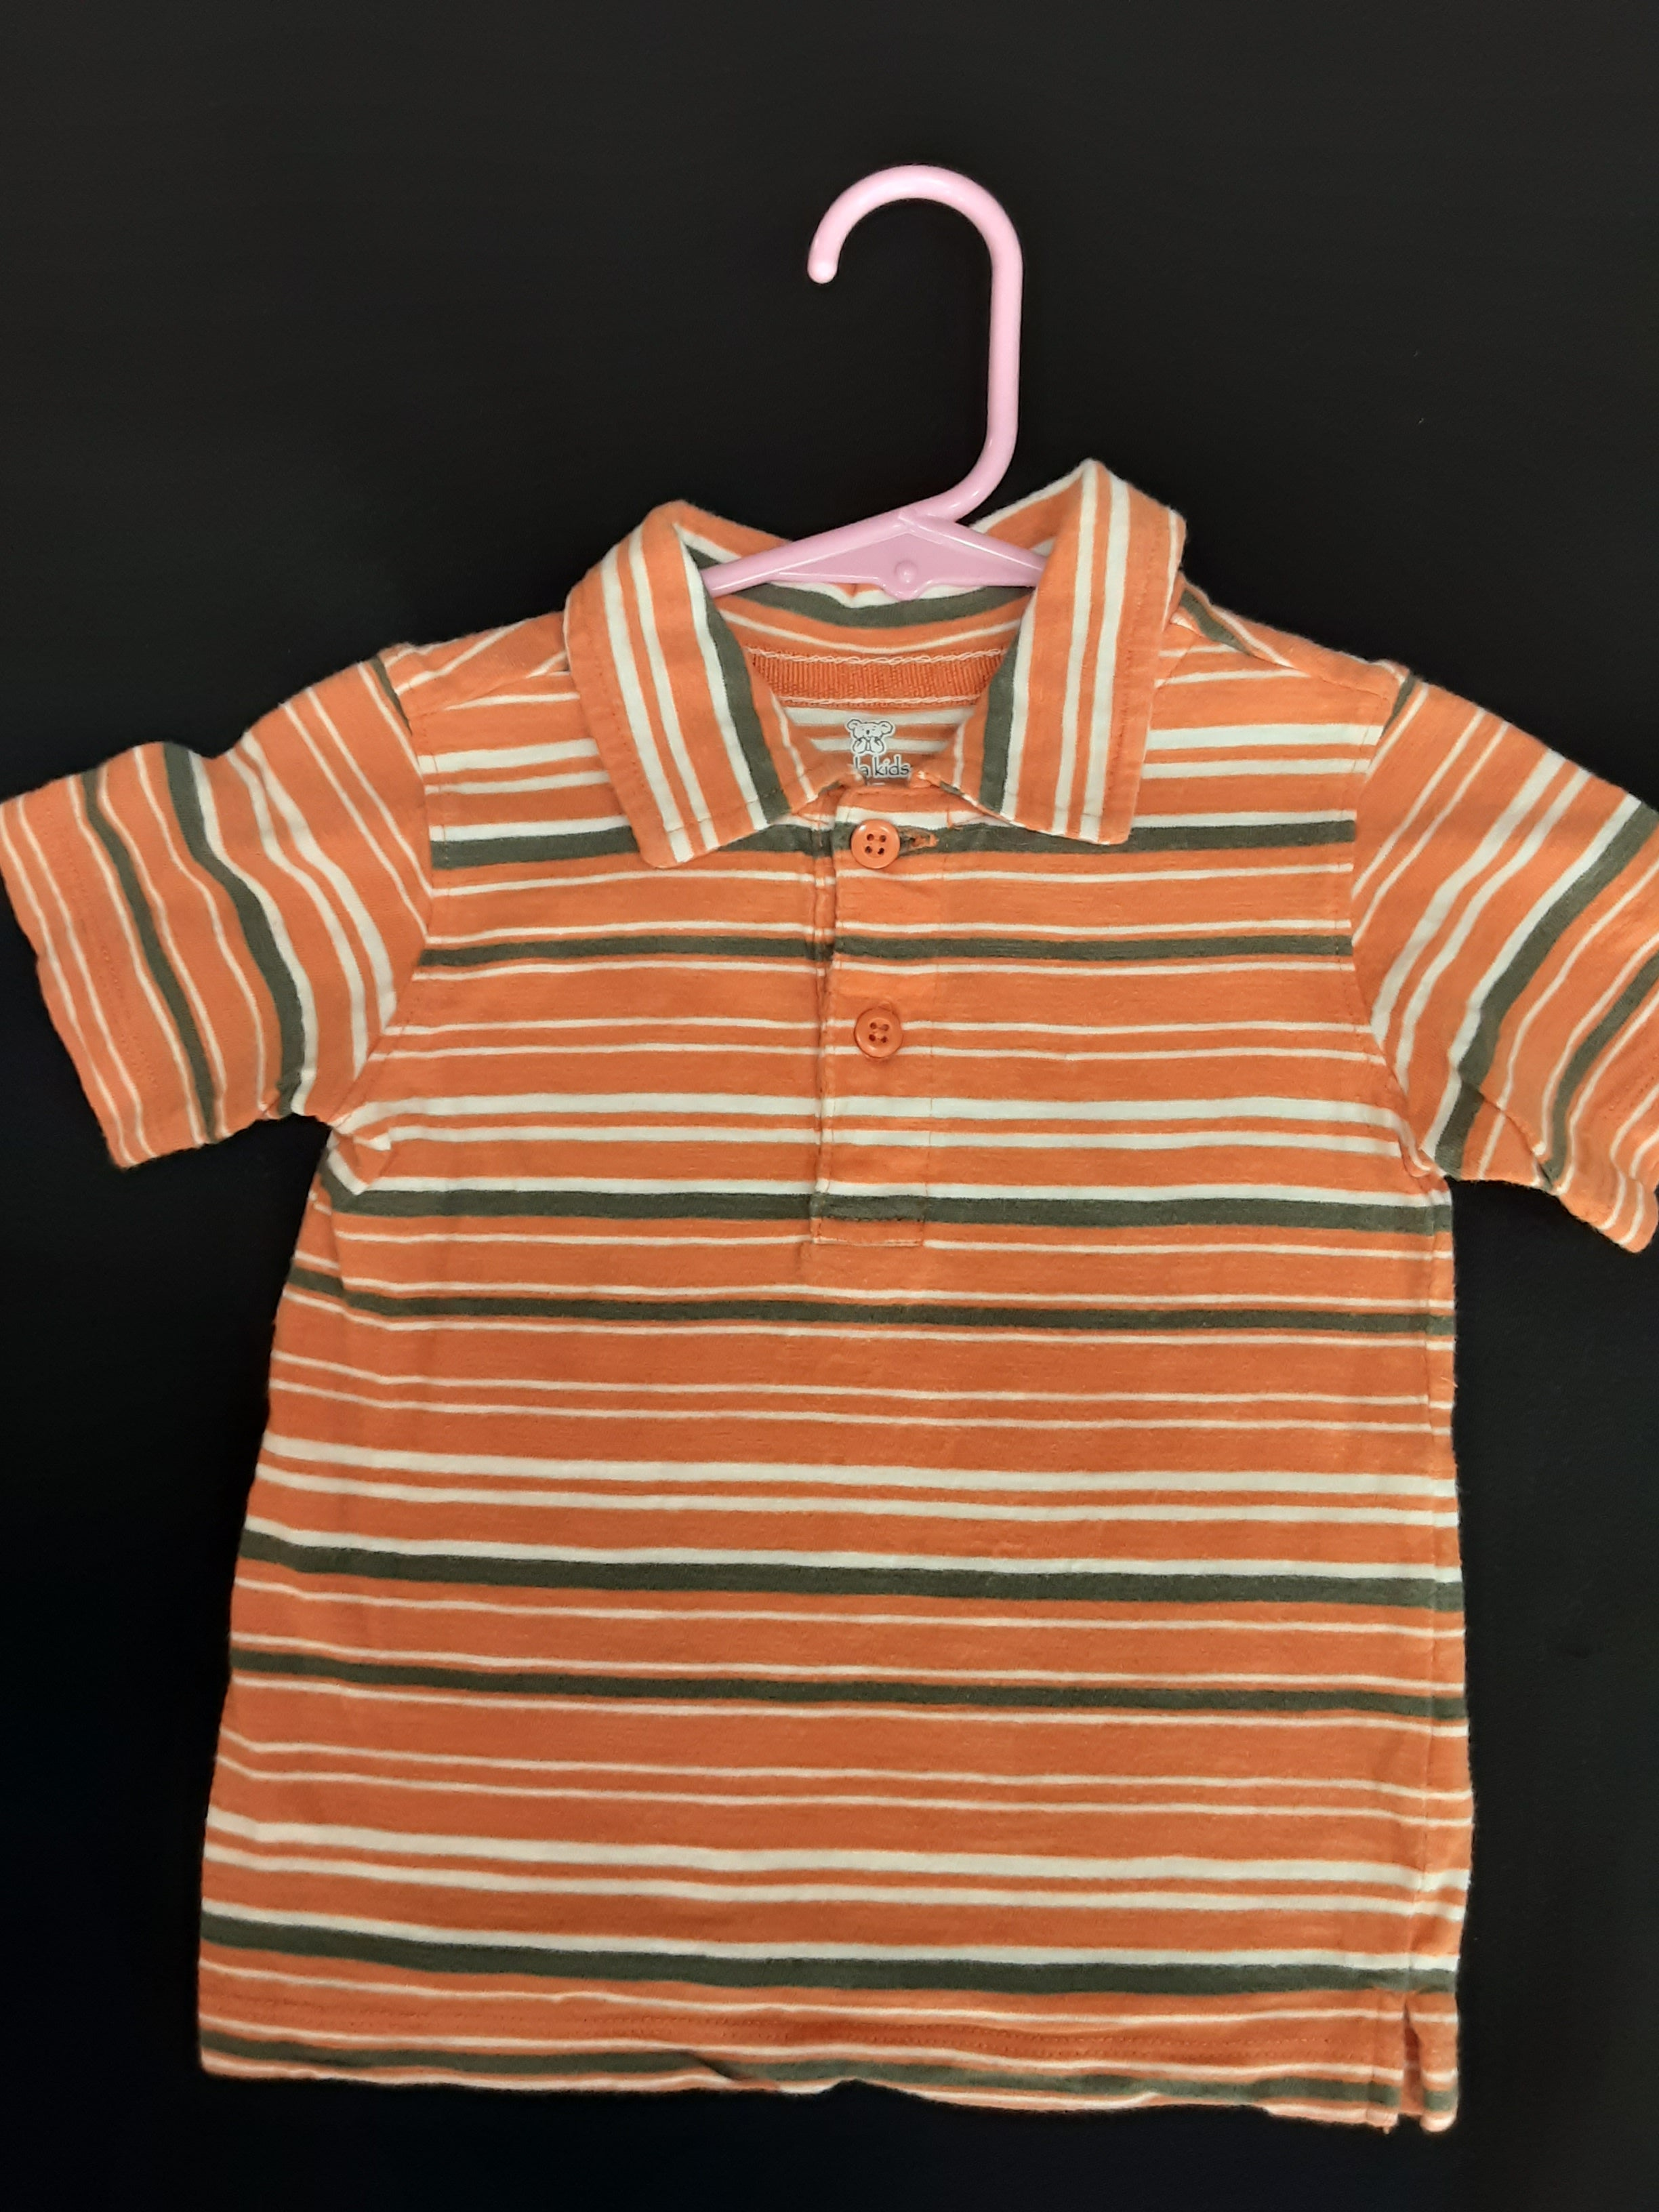 KOALA KIDS orange and olive green striped polo  Size 12m boys